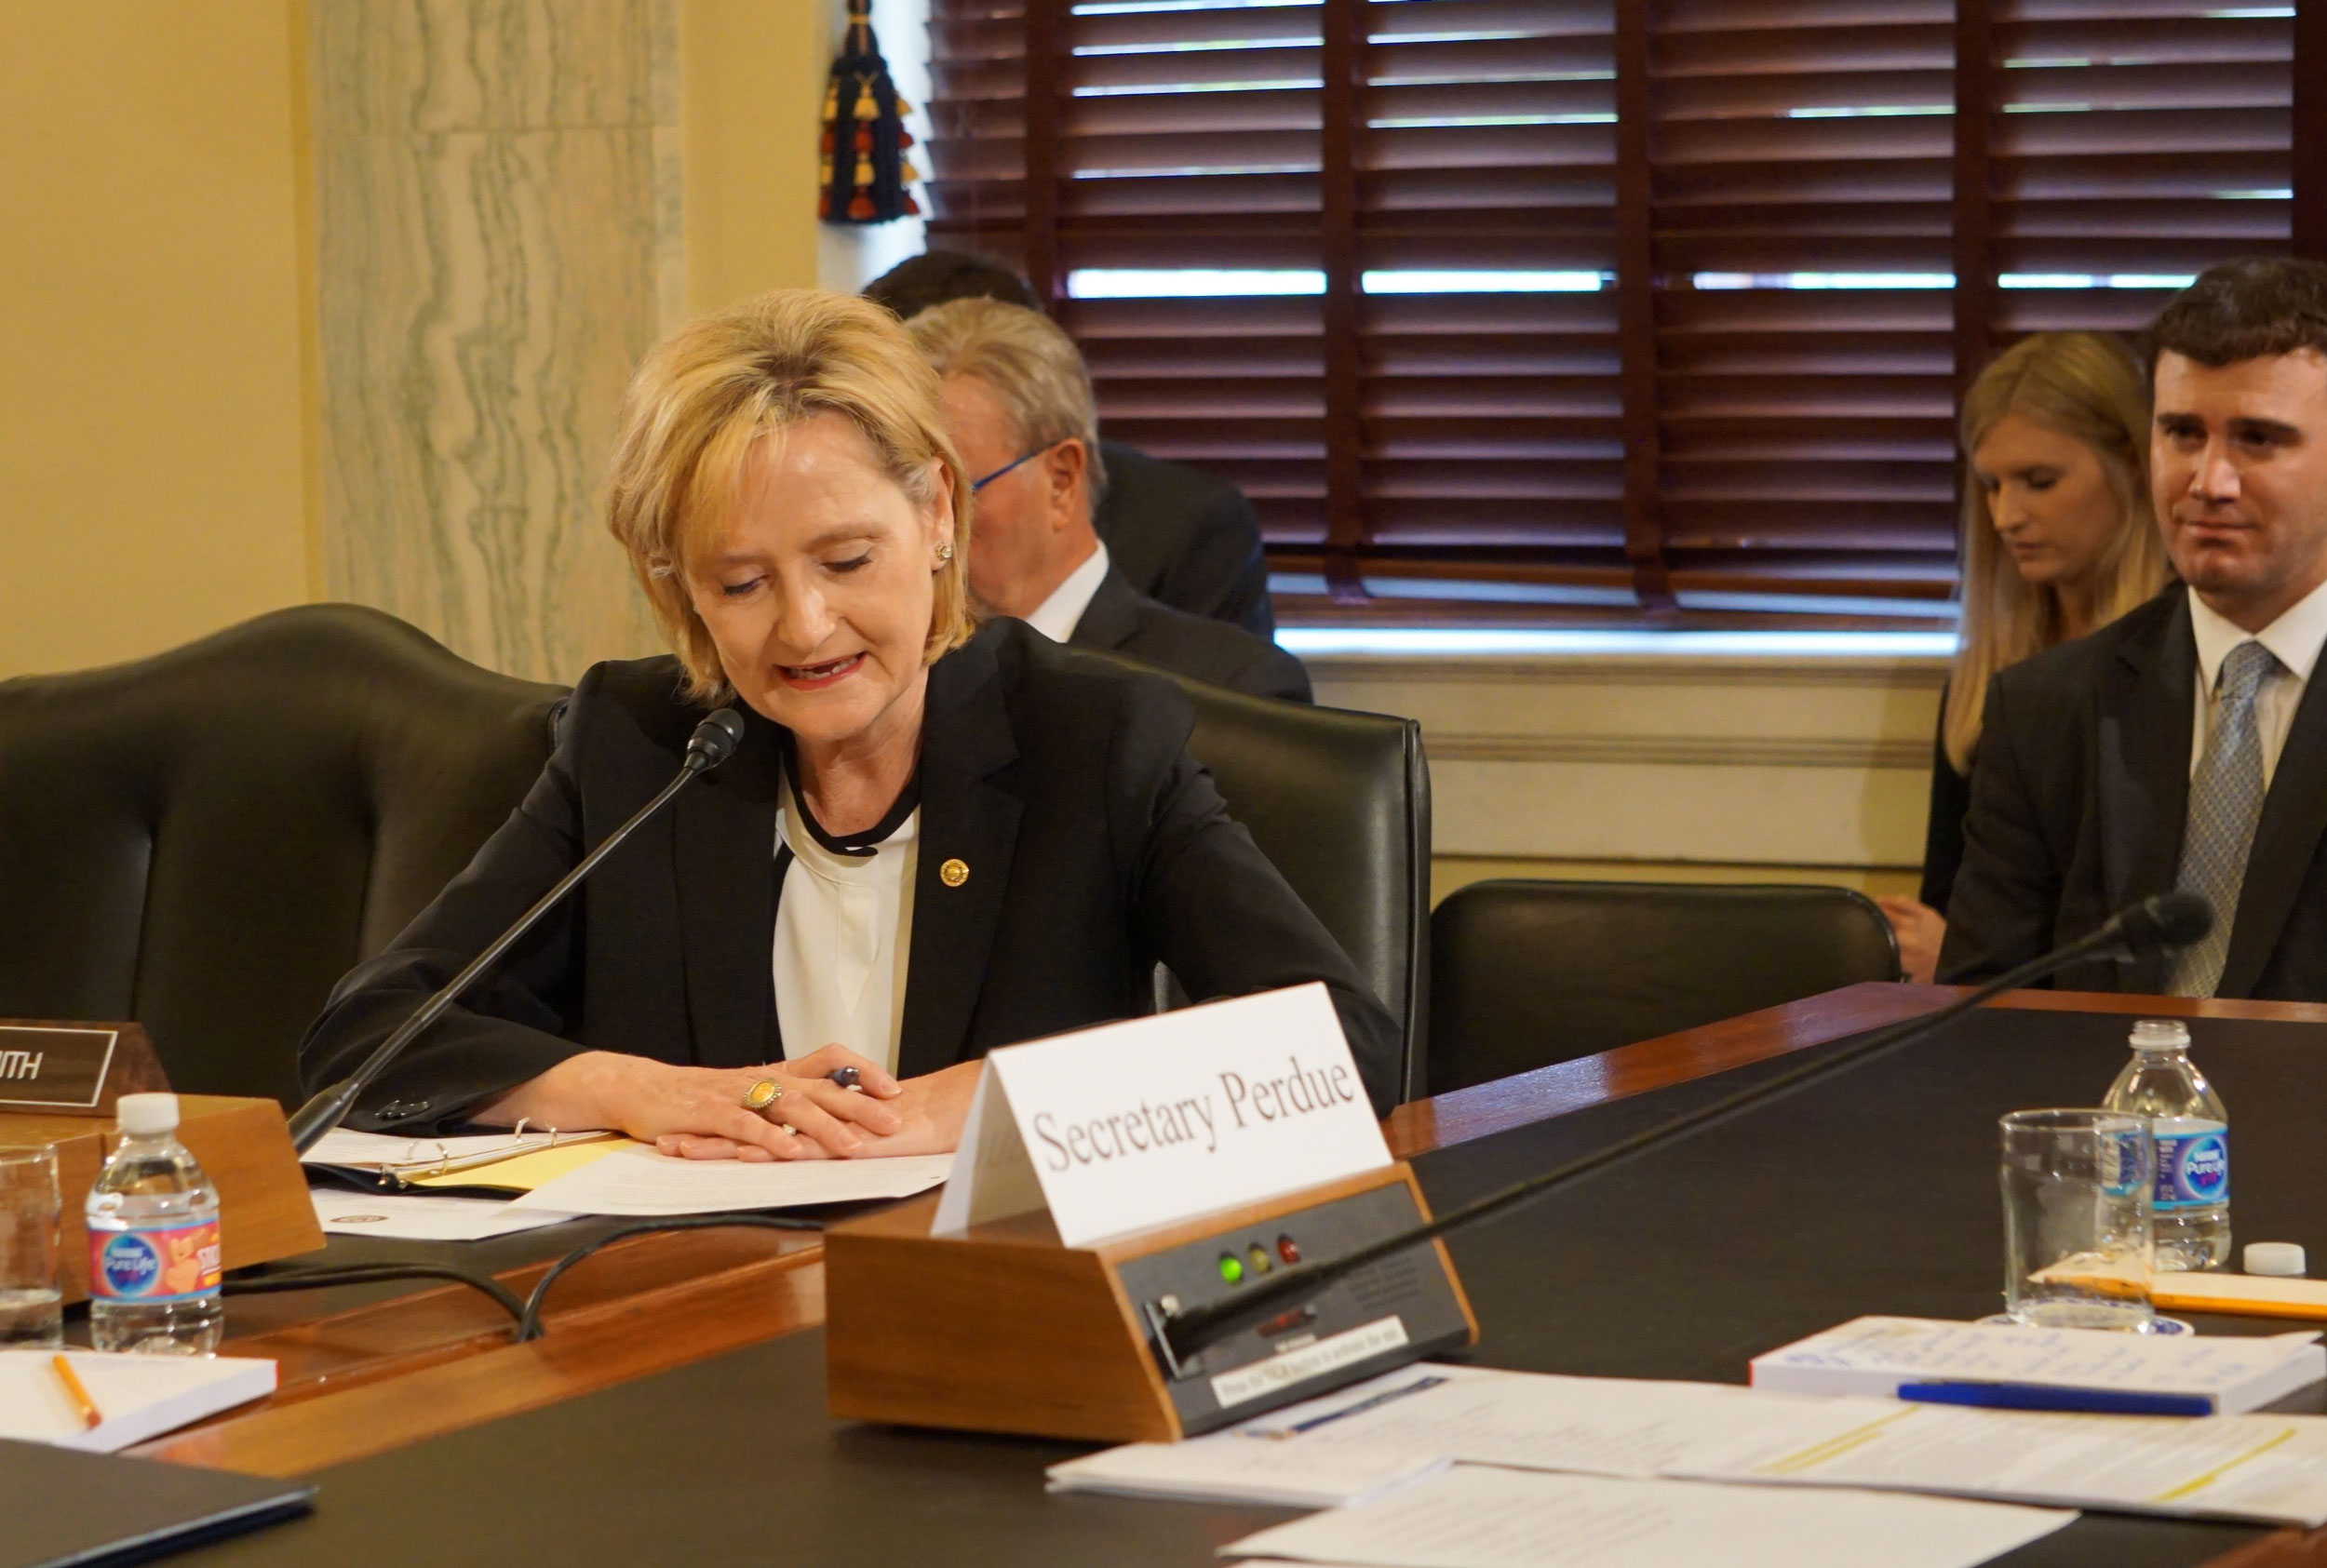 Senator Cindy Hyde-Smith Proposed Duck Extension